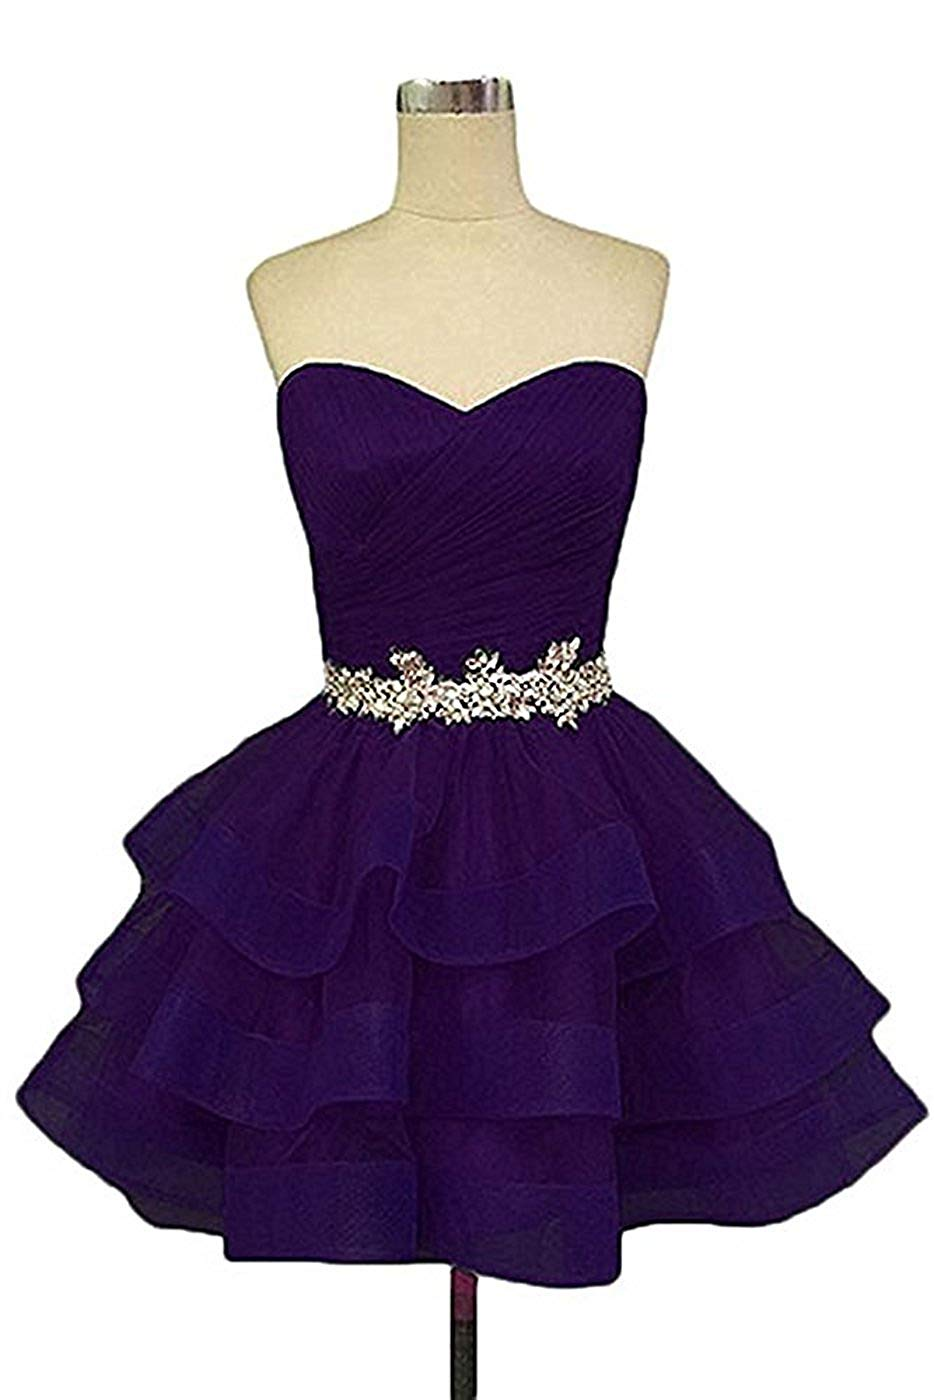 c416b860c5a Get Quotations · Ladsen Women s Sweetheart Homecoming Cocktail Dress Puffy  Short Beading Prom Dresses For Juniors L178 Purple US18